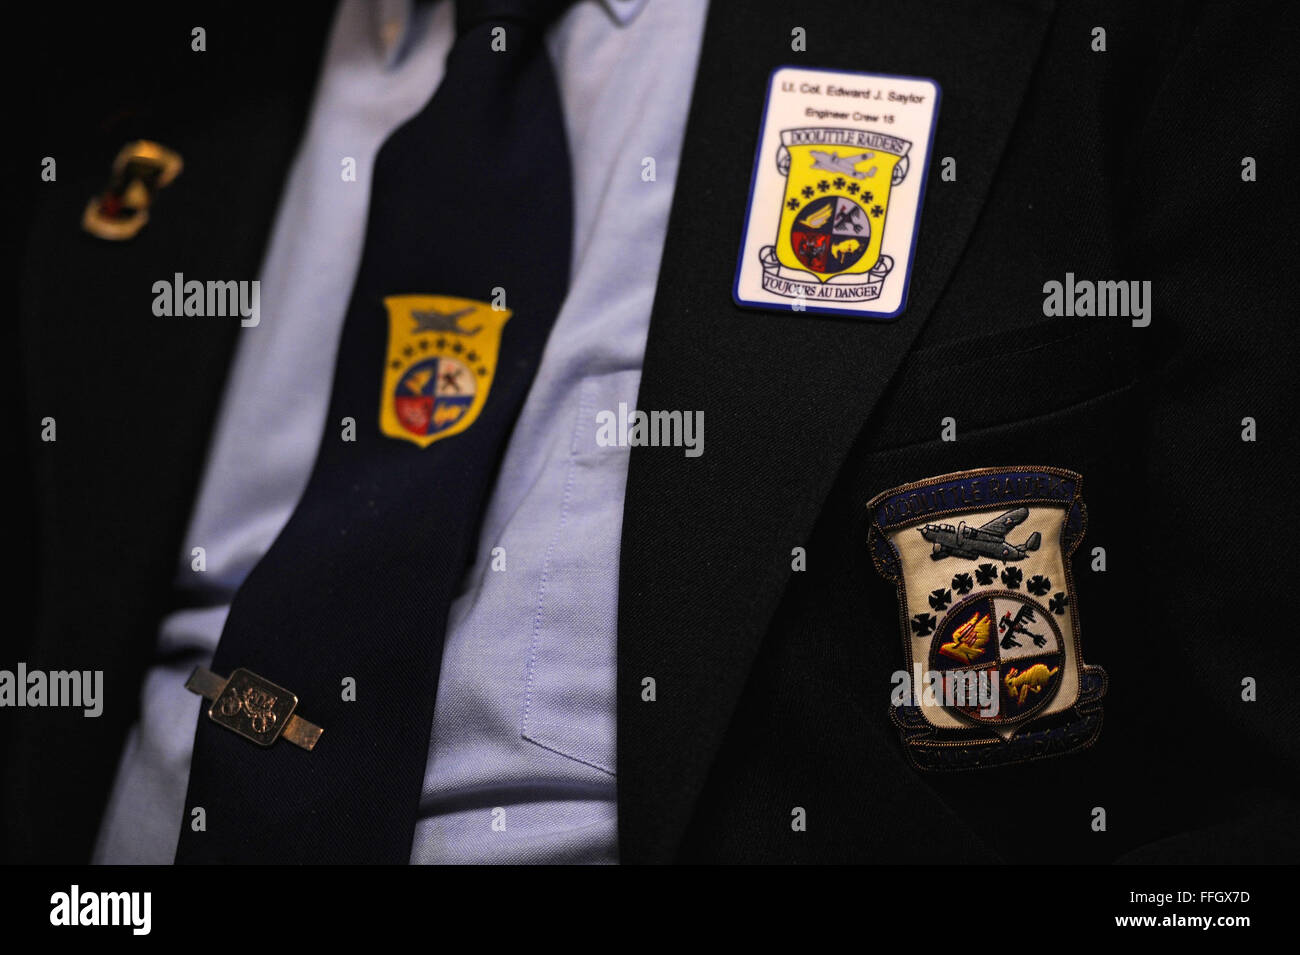 The Doolittle Tokyo Raiders patch, worn by retired Lt. Col. Edward J. Saylor, represents the bomber groups that - Stock Image